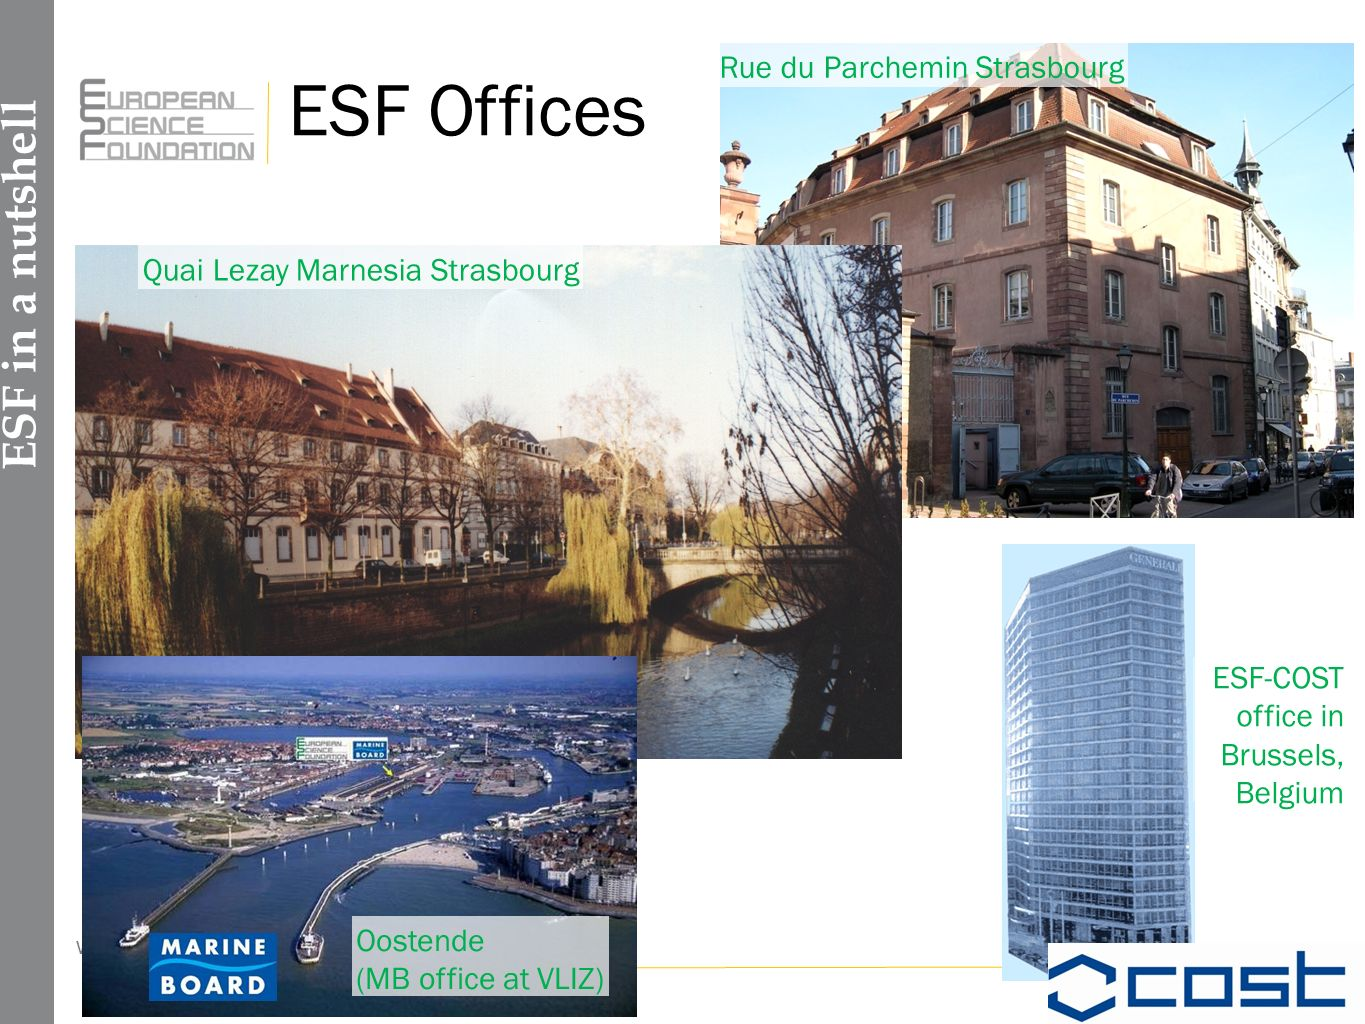 www.esf.org 5 Rue du Parchemin Strasbourg Quai Lezay Marnesia Strasbourg ESF Offices ESF-COST office in Brussels, Belgium Oostende (MB office at VLIZ) ESF in a nutshell